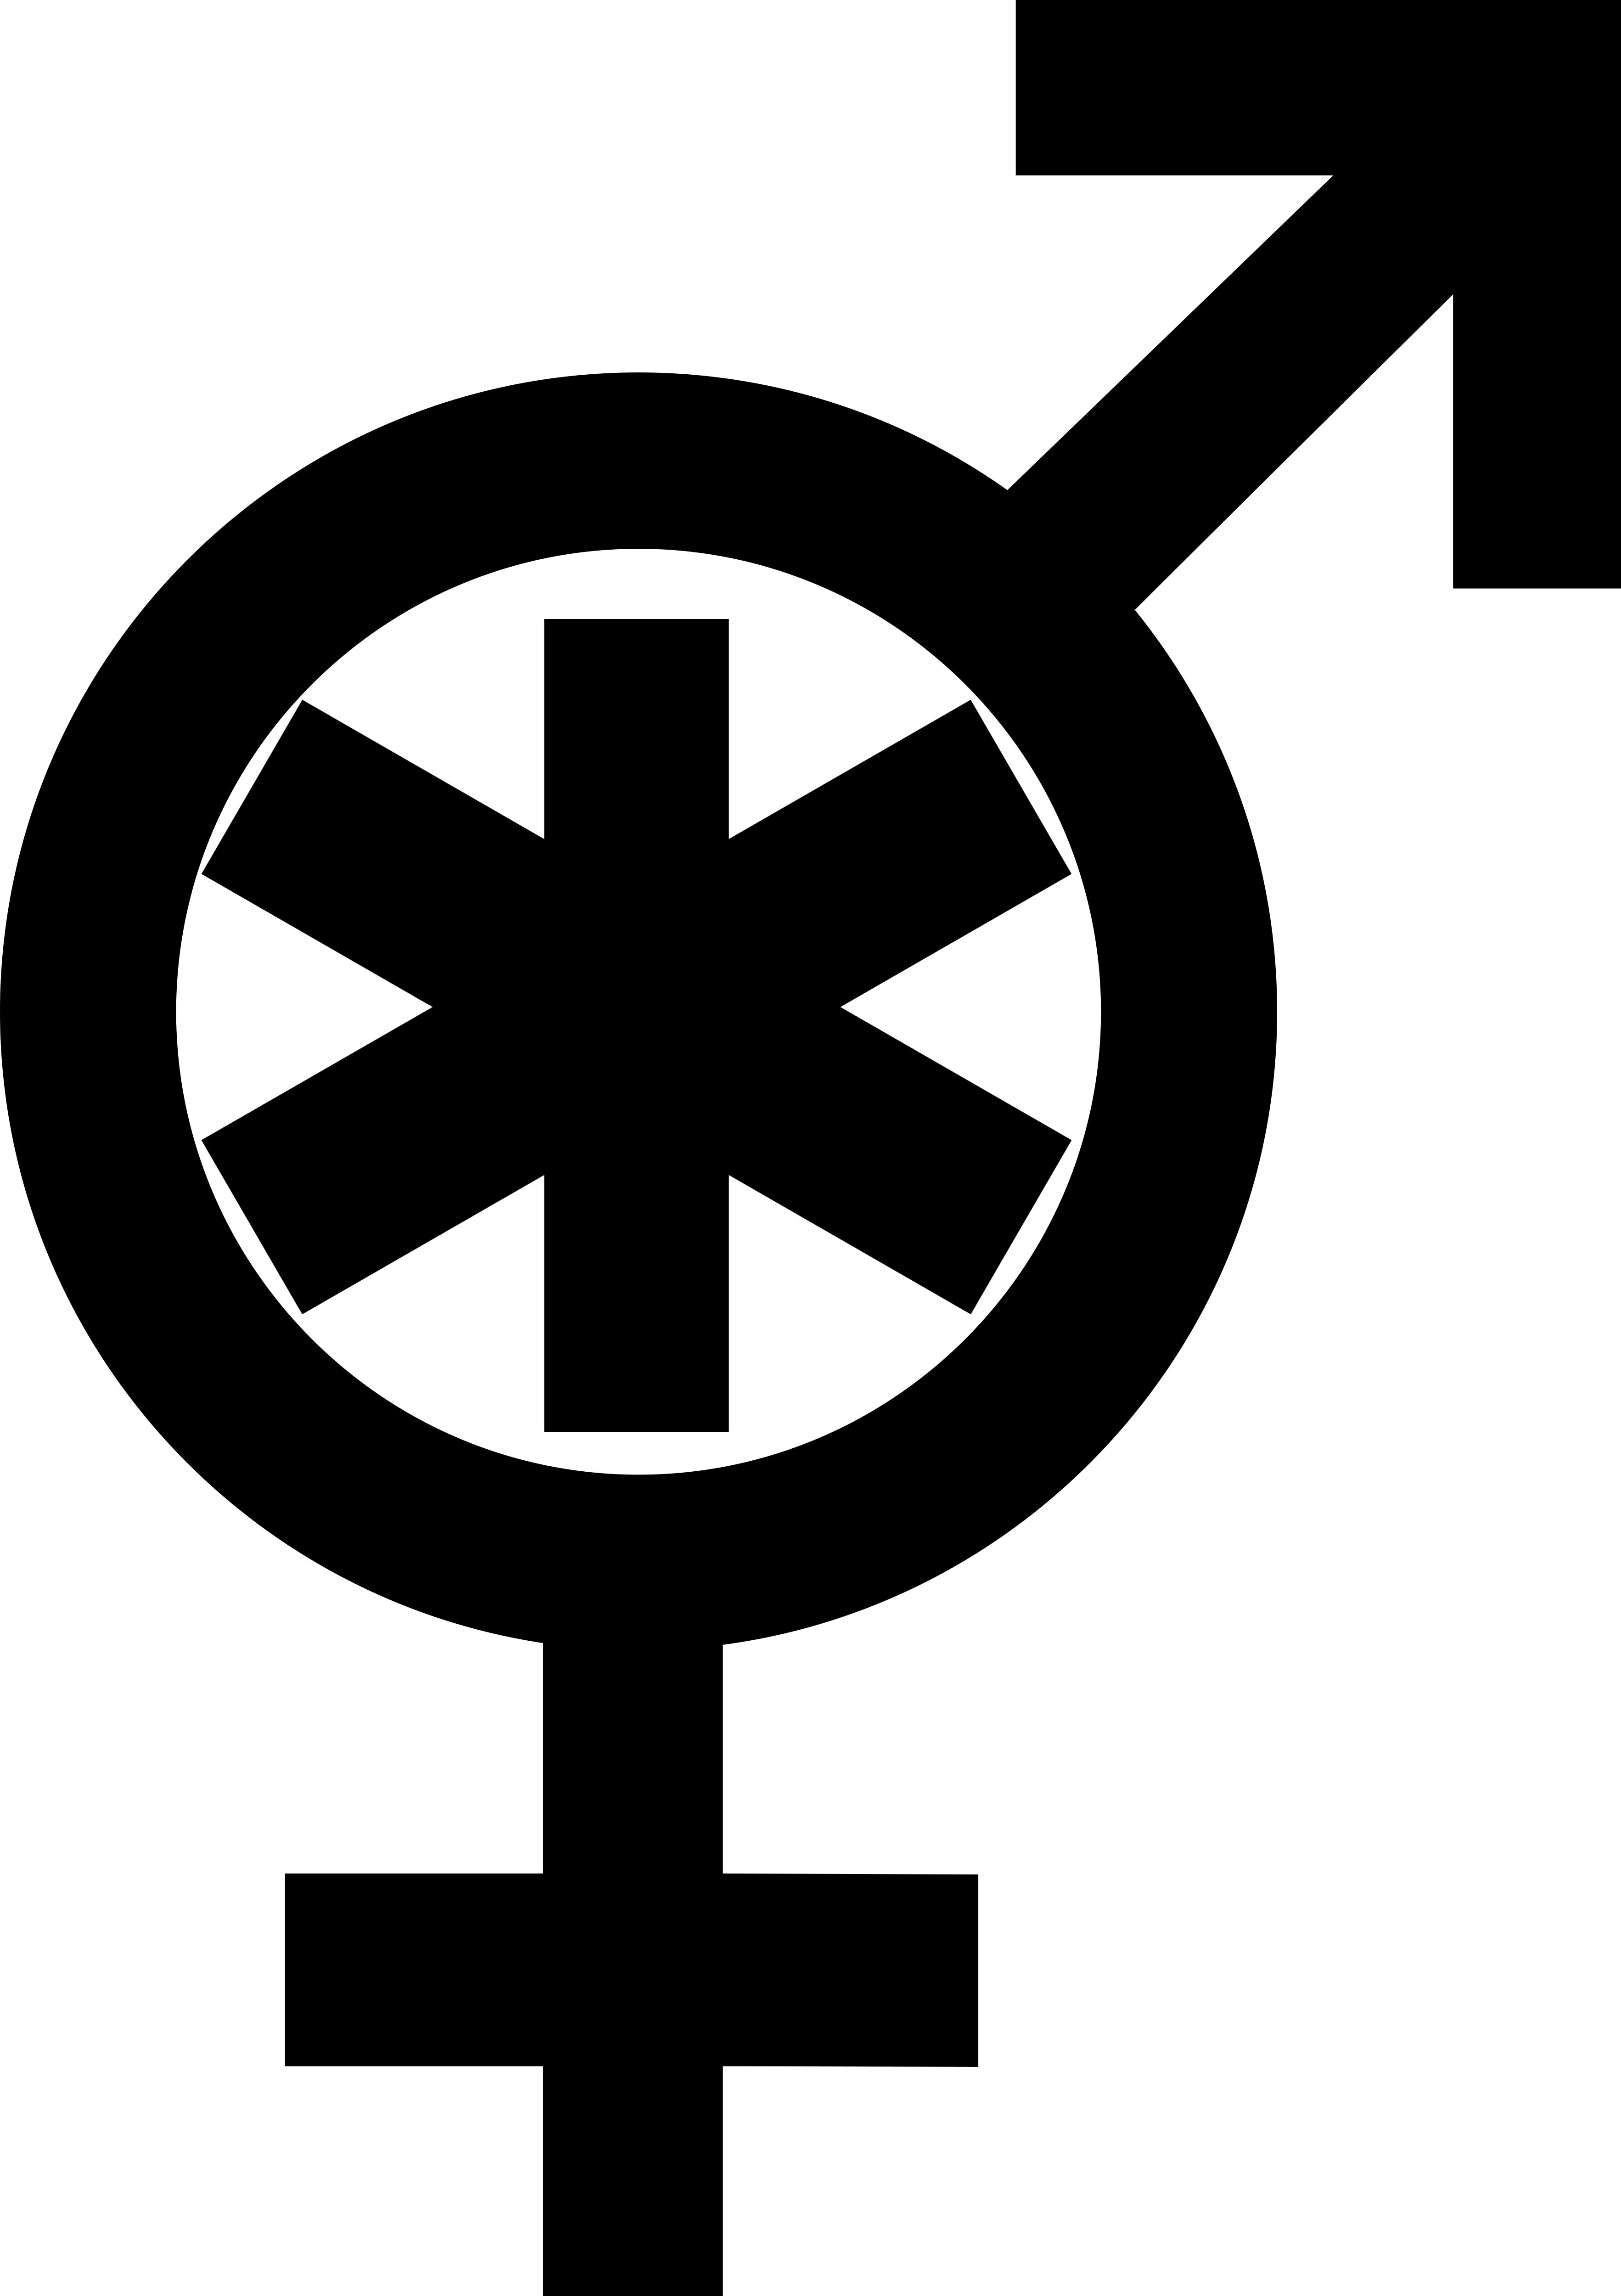 A combination of Mars and Venus symbols with an asterisk within the circle.